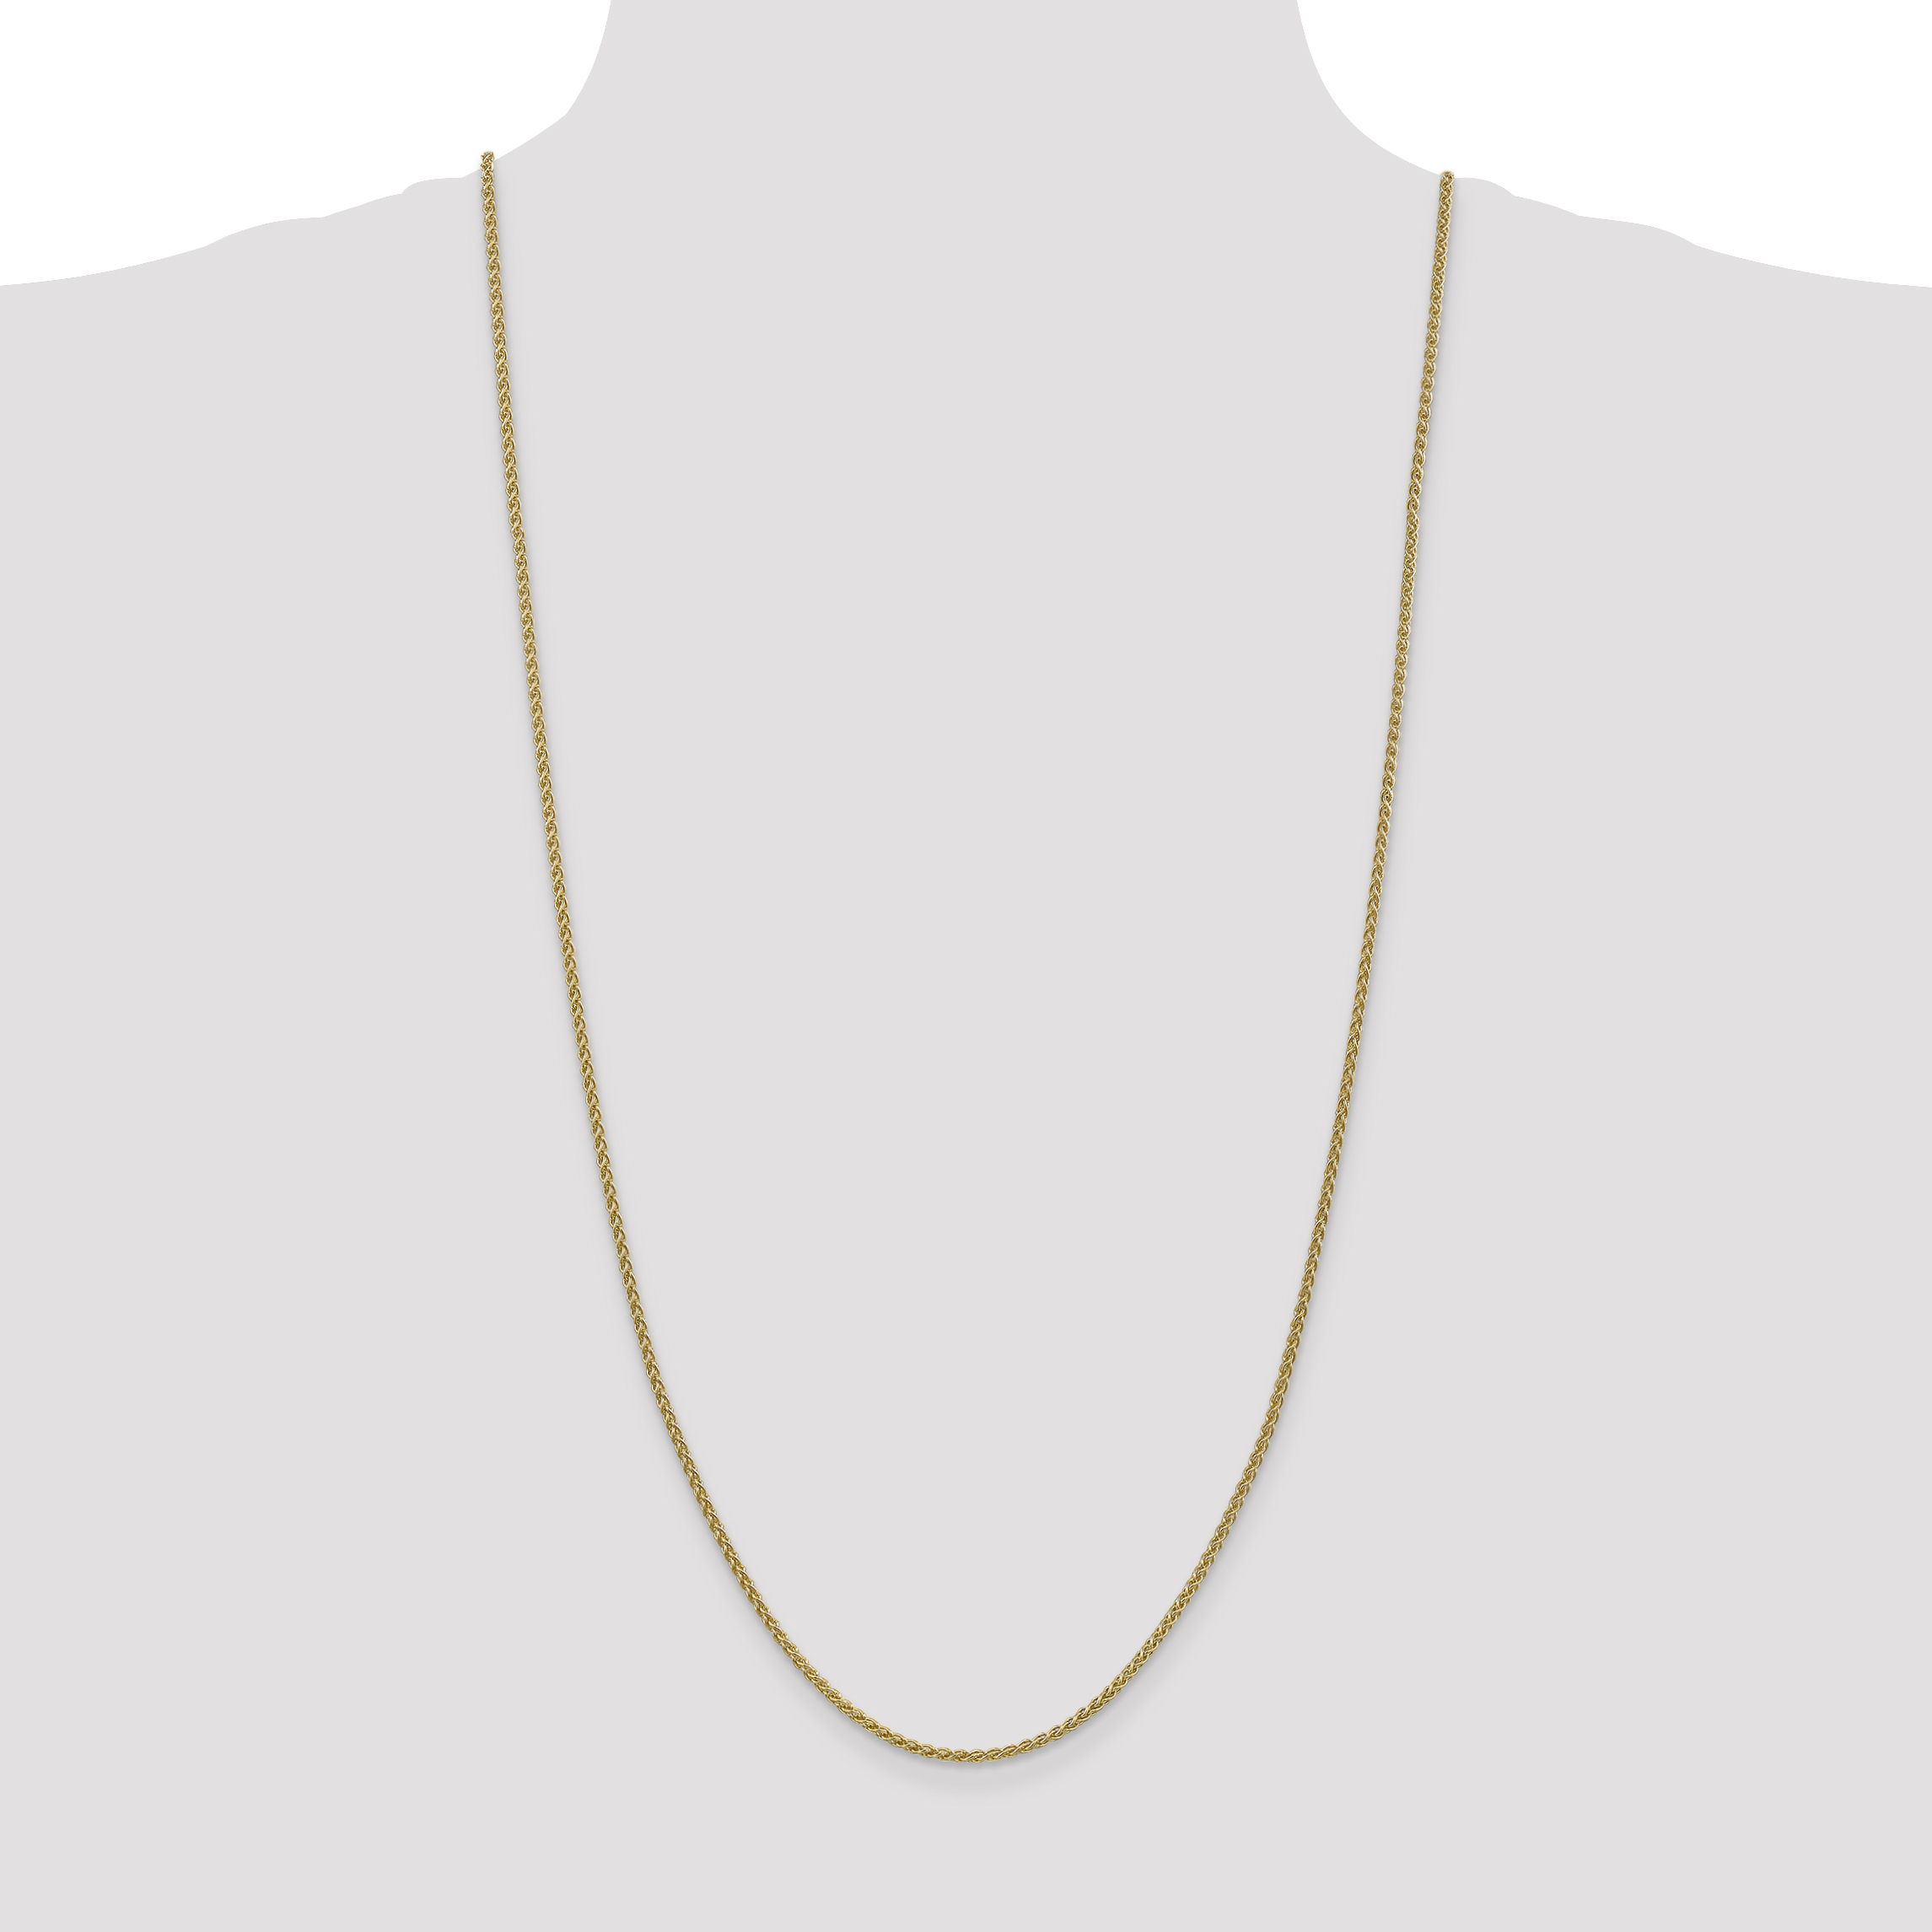 14k Yellow Gold 2mm Spiga Chain Necklace 30 Inch Pendant Charm Wheat Fine Jewelry Gifts For Women For Her - image 2 of 5